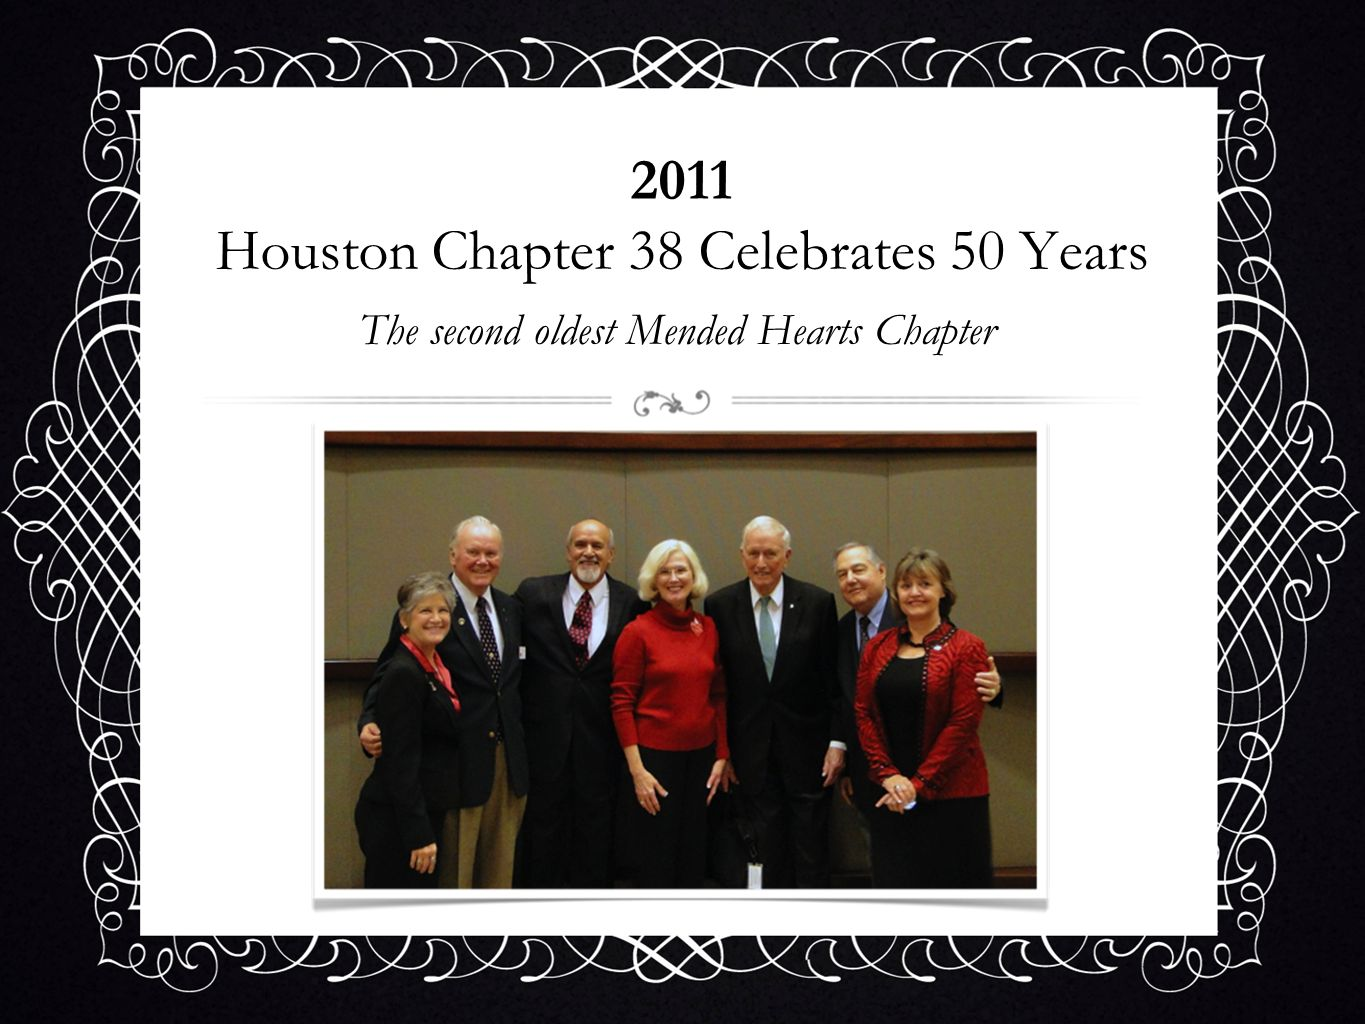 2011 Houston Chapter 38 Celebrates 50 Years The second oldest Mended Hearts Chapter